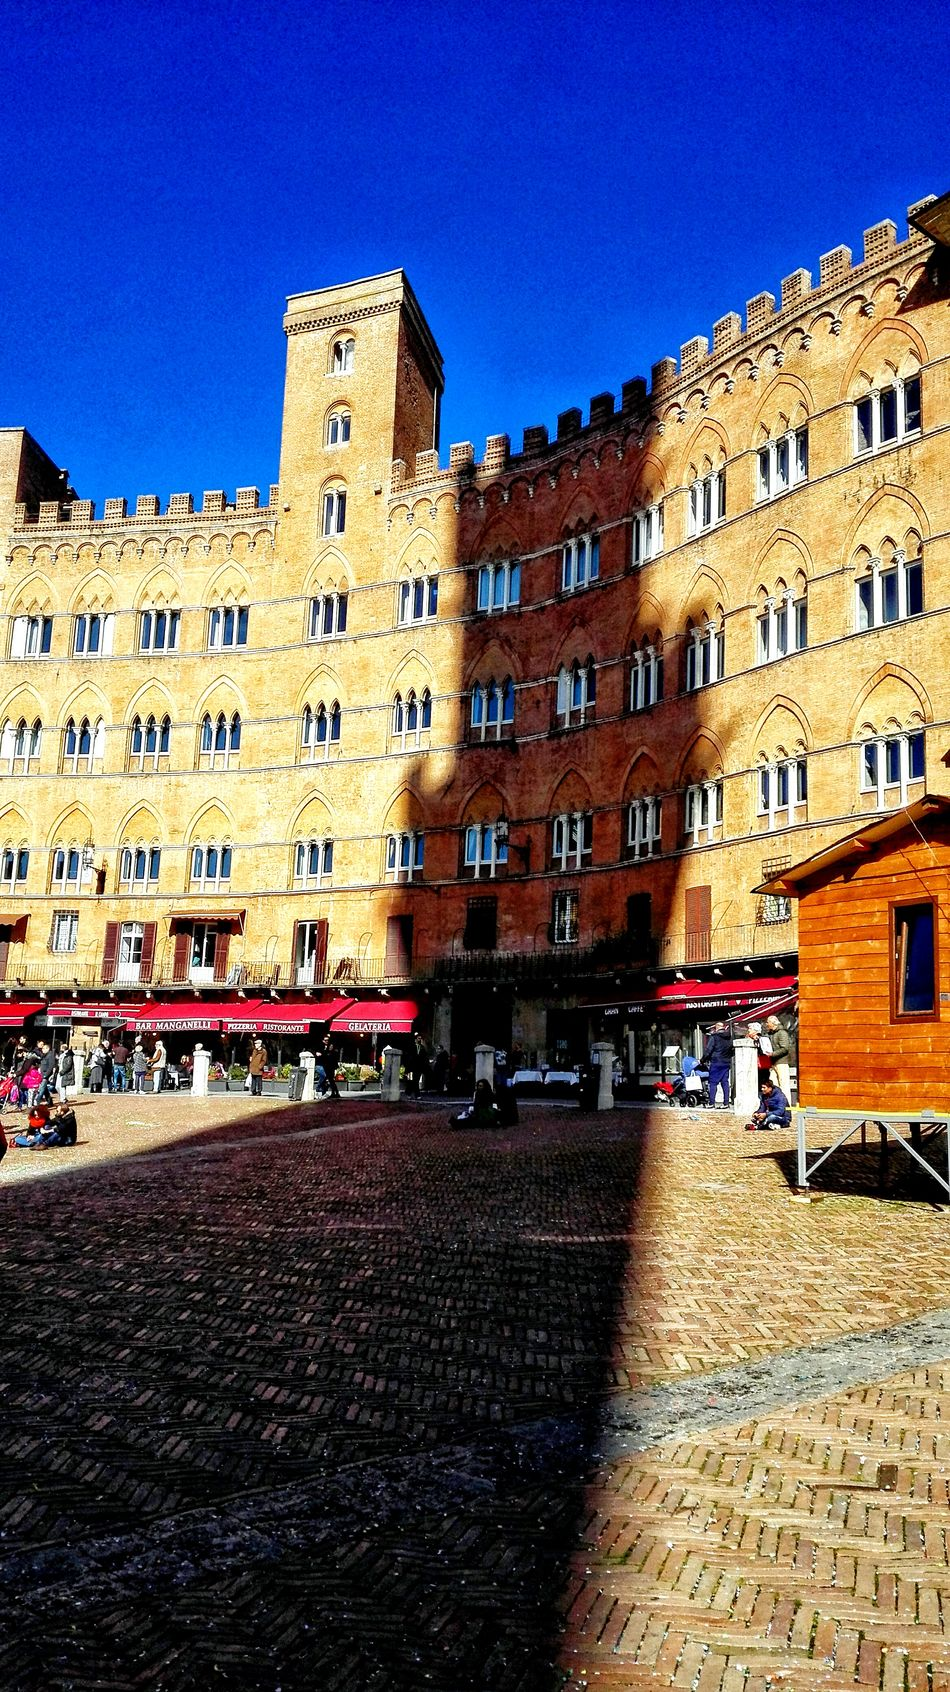 Siena, Italy Siena Tuscany Torre Del Mangia Shadow Piazza Del Campo Febrary Building Exterior Architecture City Travel Destinations Town Square Built Structure Outdoors Day Sky No People Clock Tower The City Light EyeEmNewHere